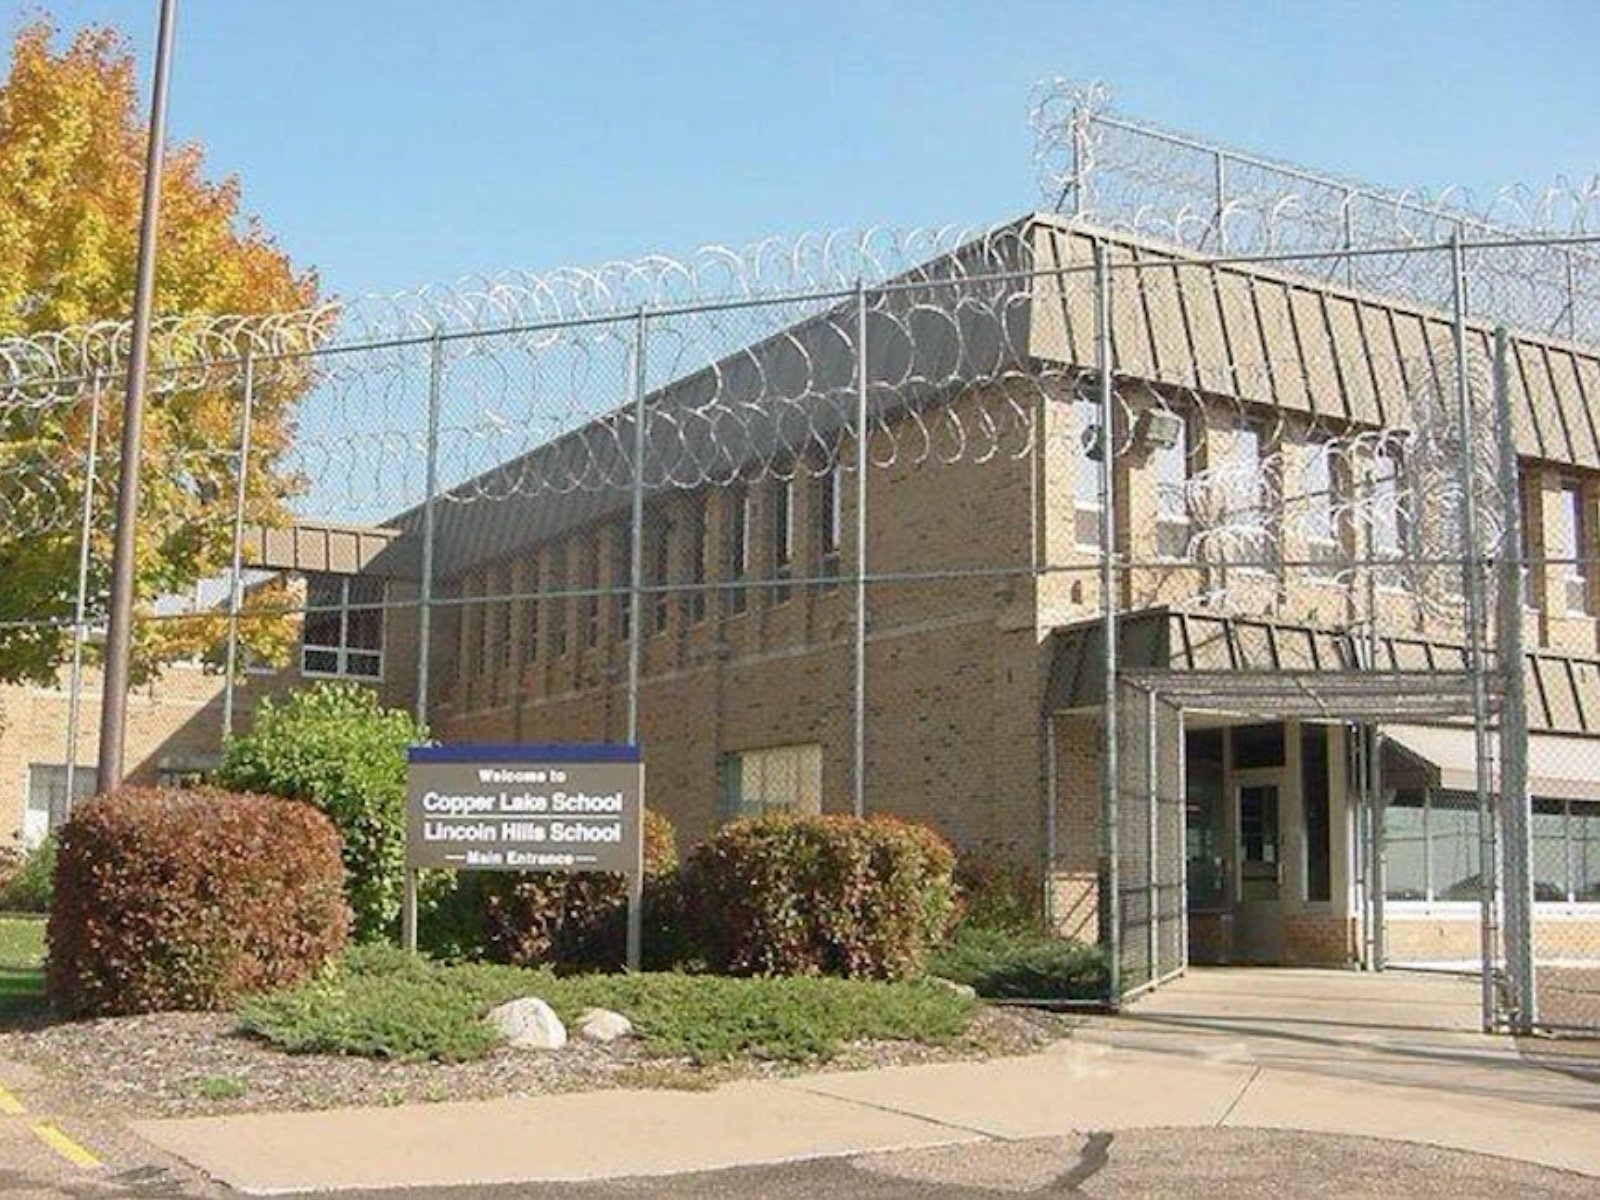 Leaders continue push for alternatives to youth incarceration